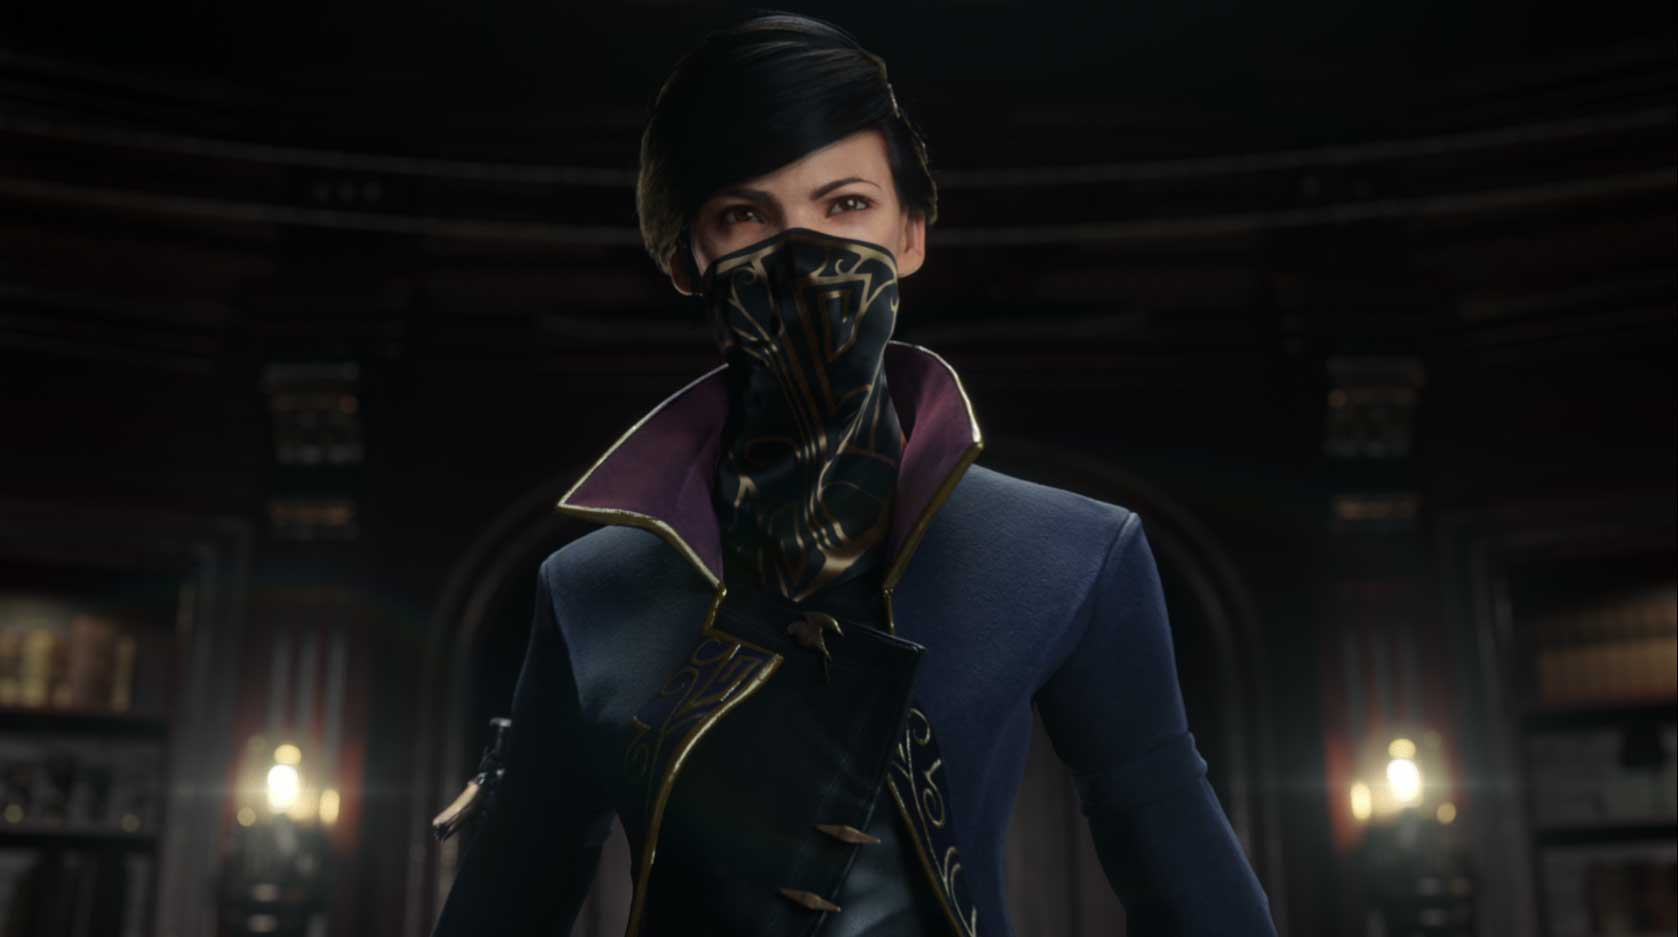 Dishonored 2 Dev Explains Morality System And Multiple Endings dishonored 2 e3 2015 2Emily